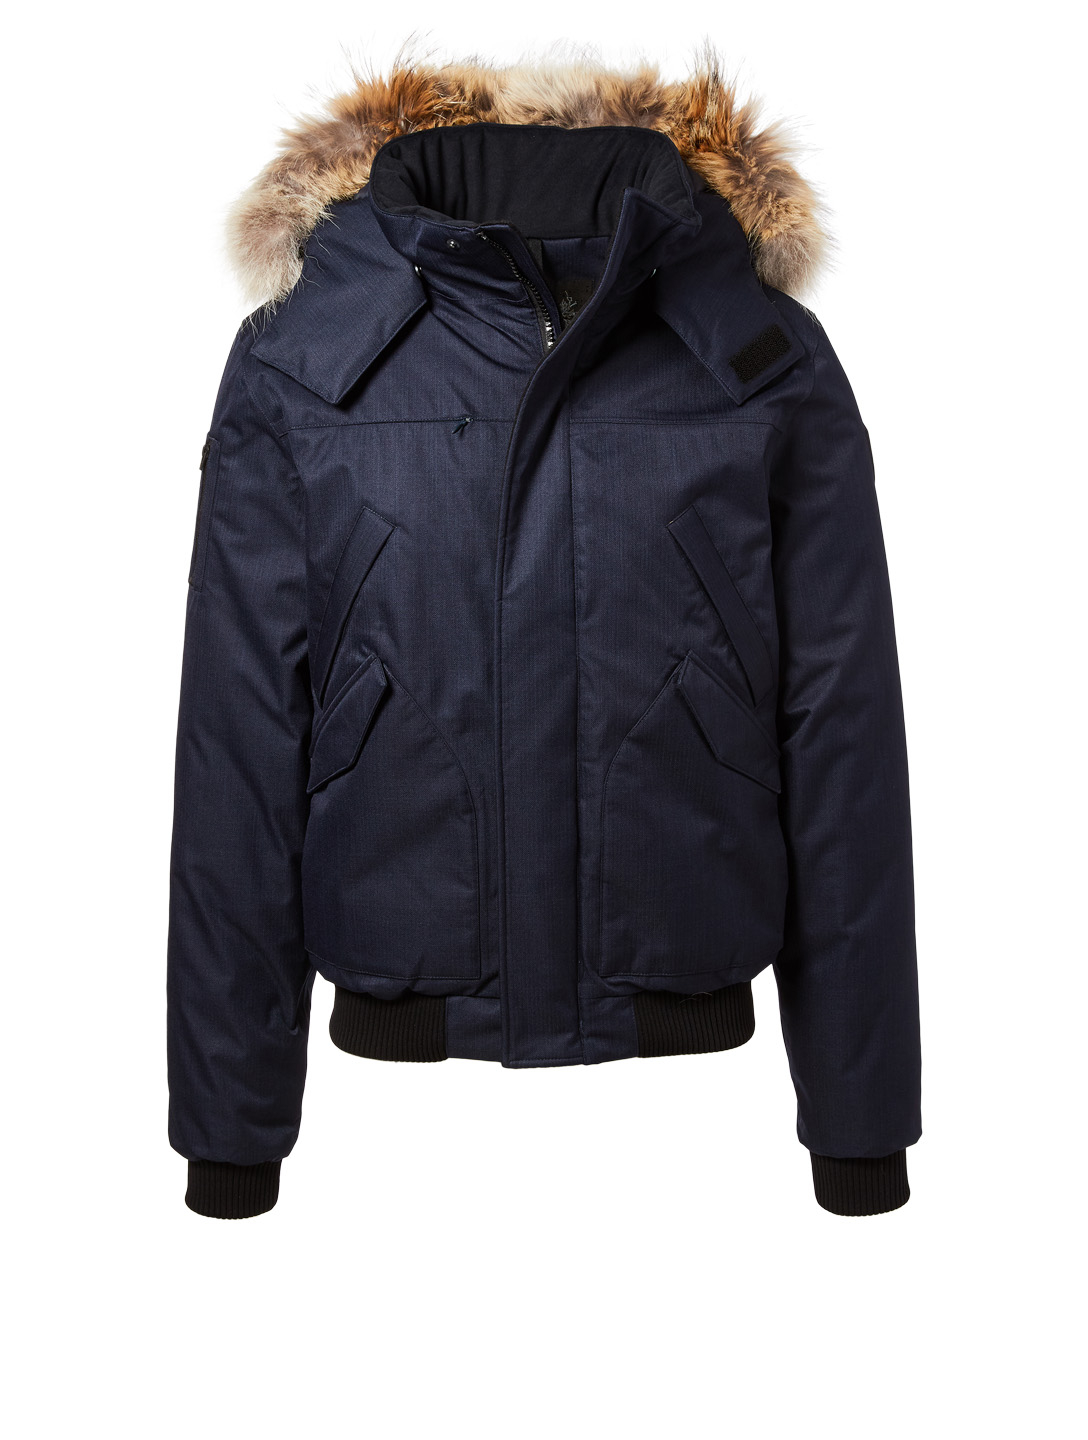 NOBIS Dylan Hooded Bomber Jacket With Fur Trim Men's Blue